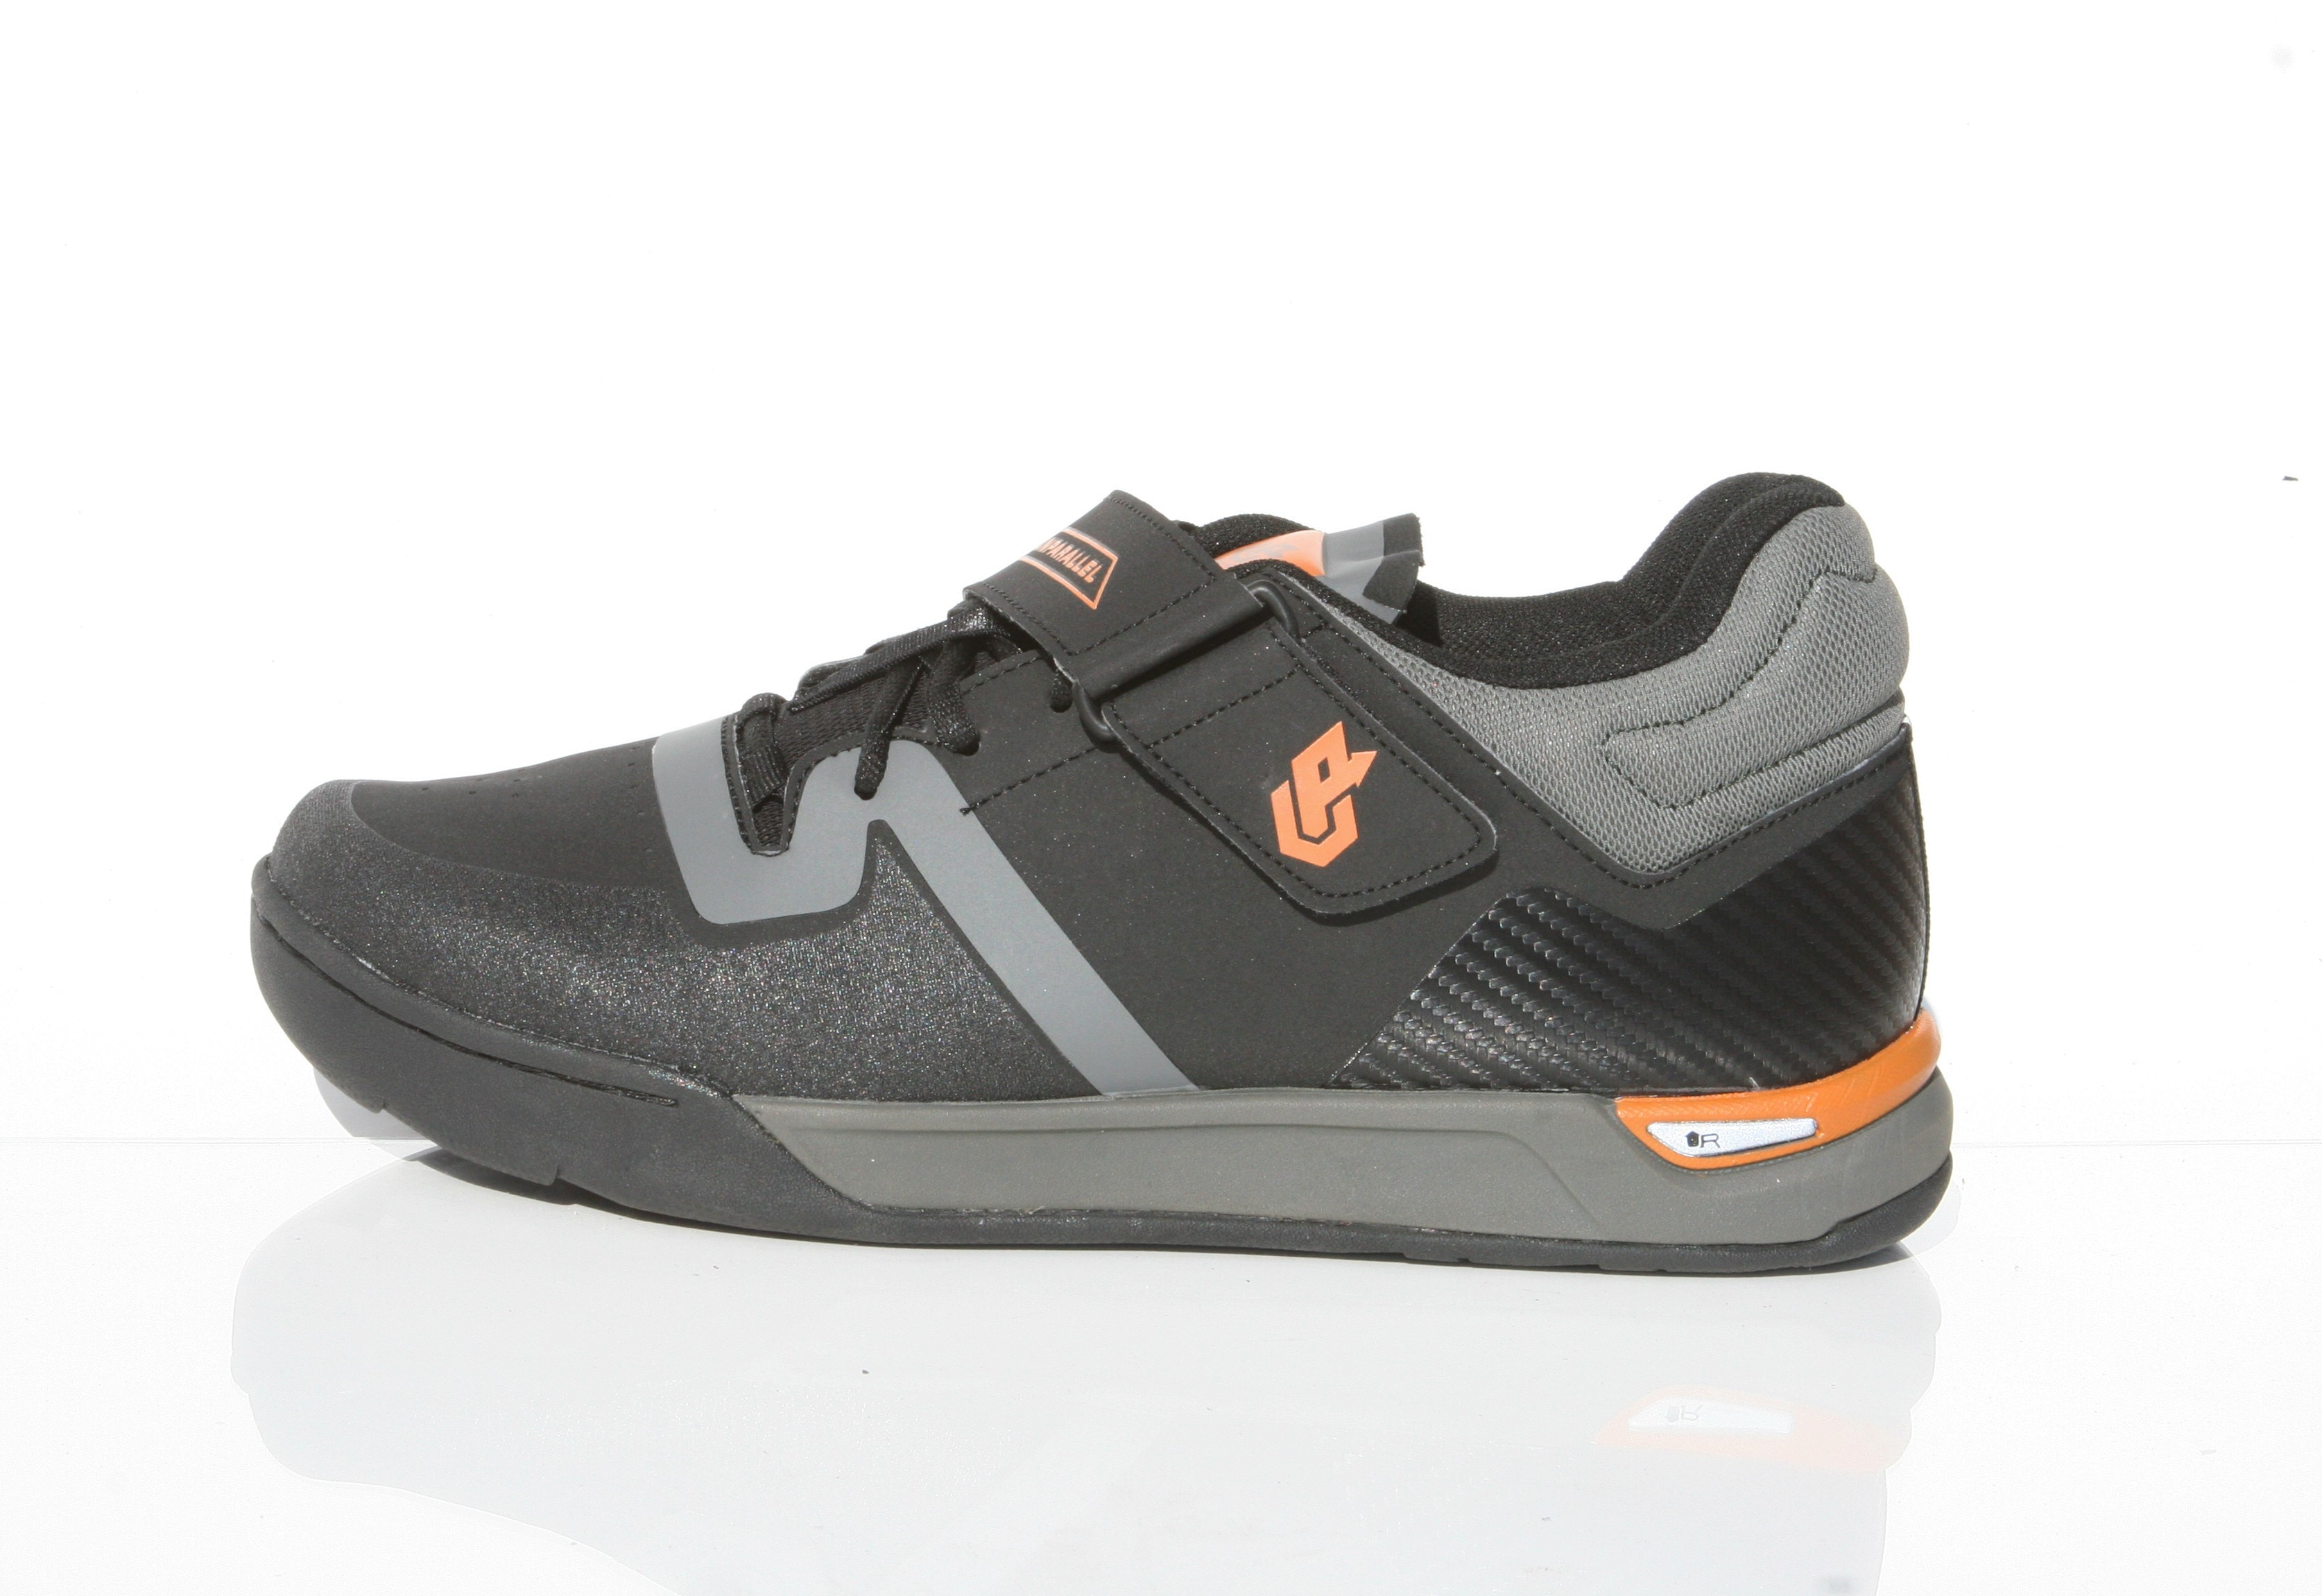 be2eedcea512 Footwear veterans join forces for Unparallel Sports shoes